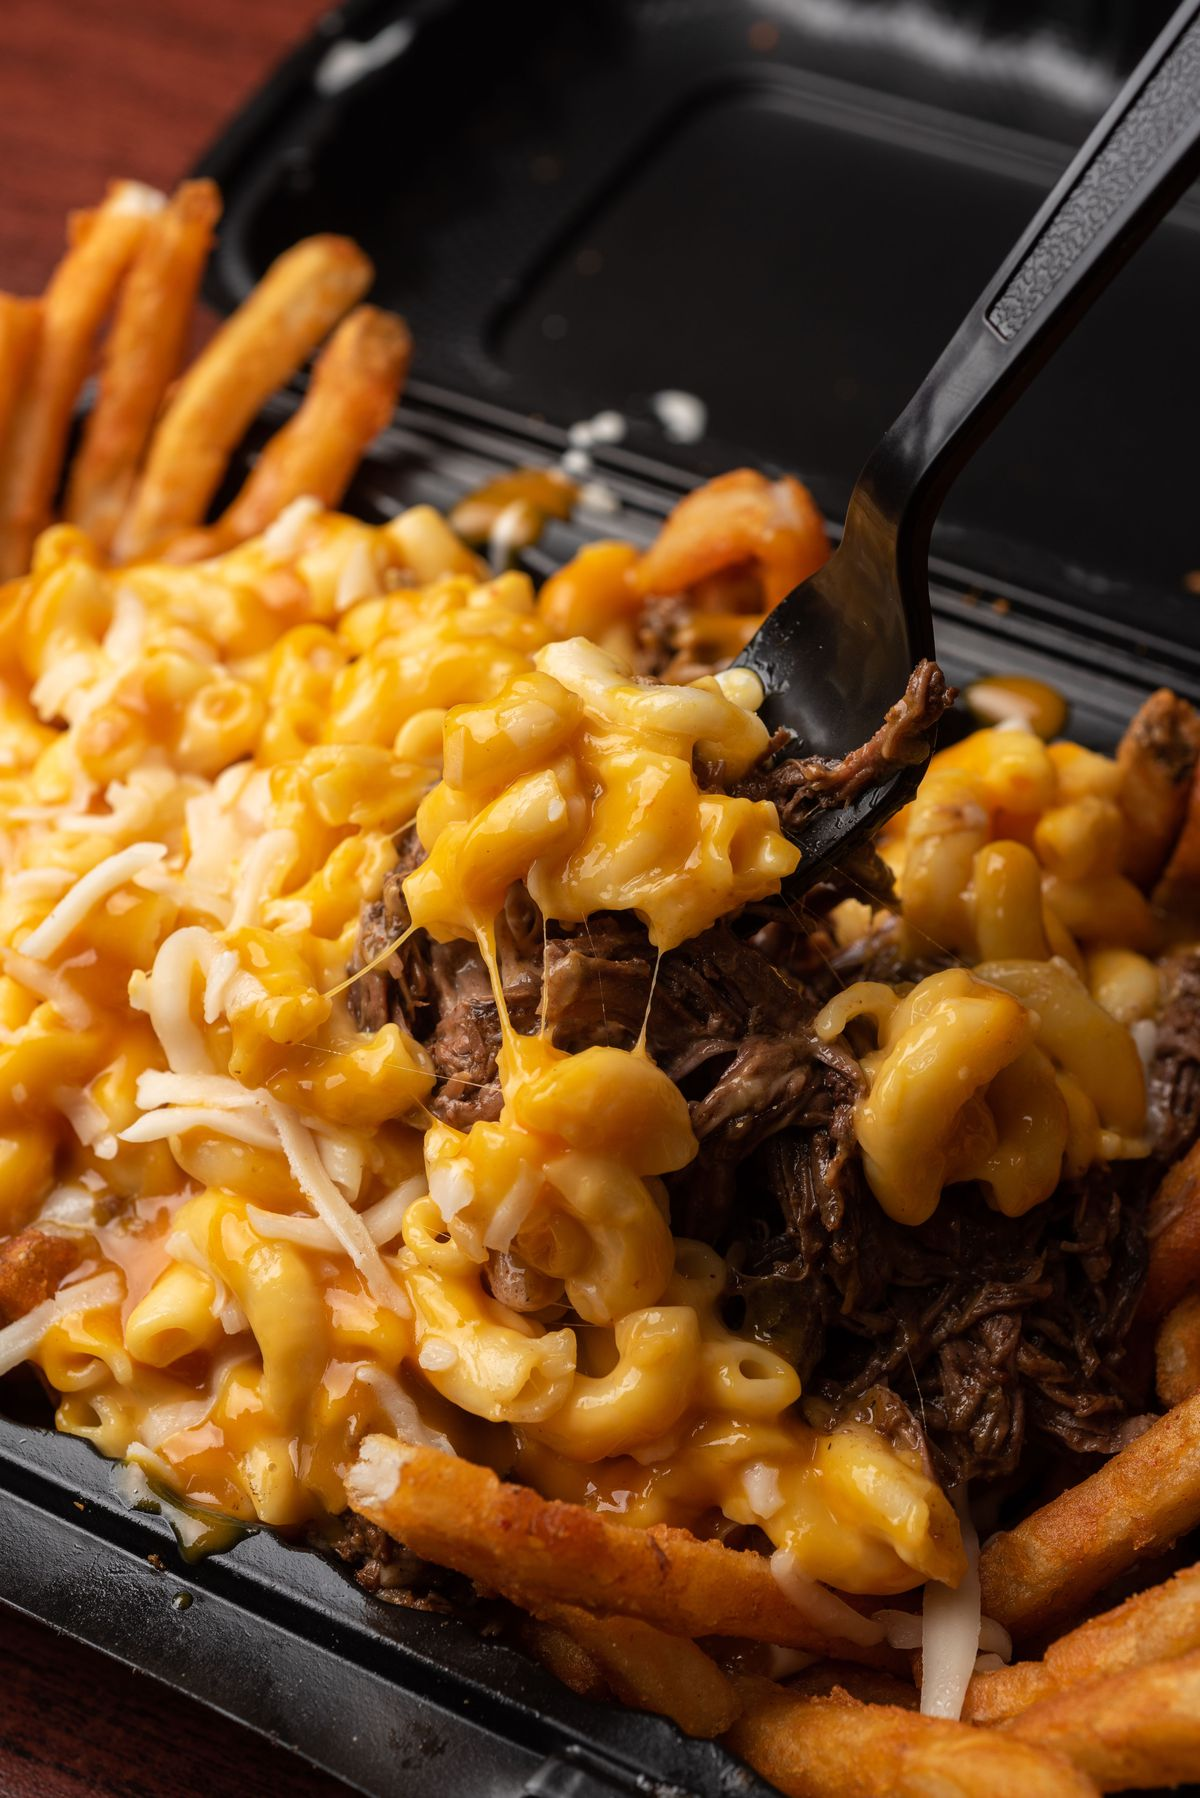 Mac and cheese over brisket and french fries in a styrofoam container.